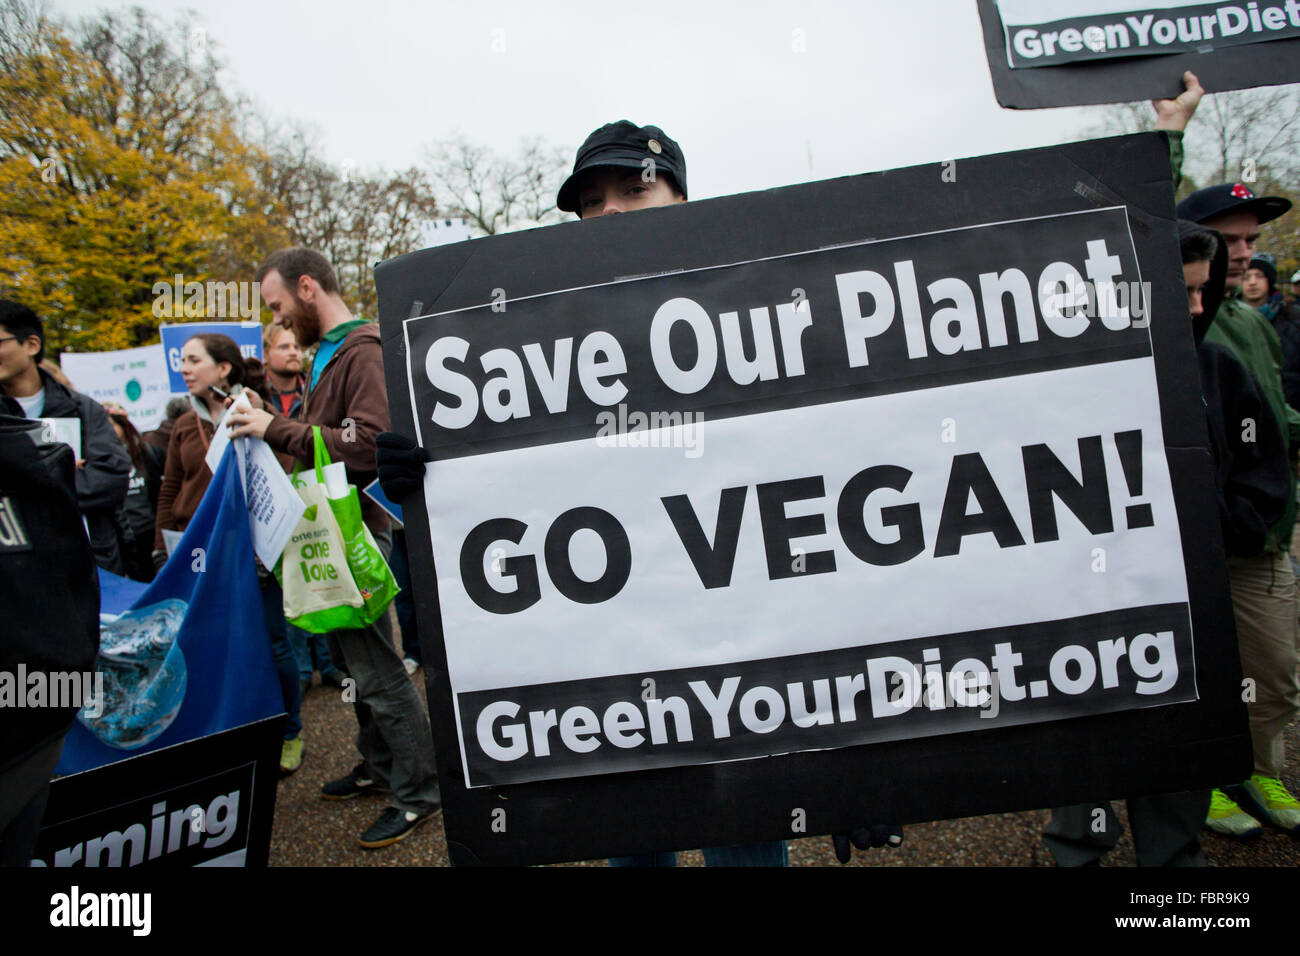 November 21, 2015, Washington, DC USA: Environmental activists protest in front of the White House (woman holding - Stock Image